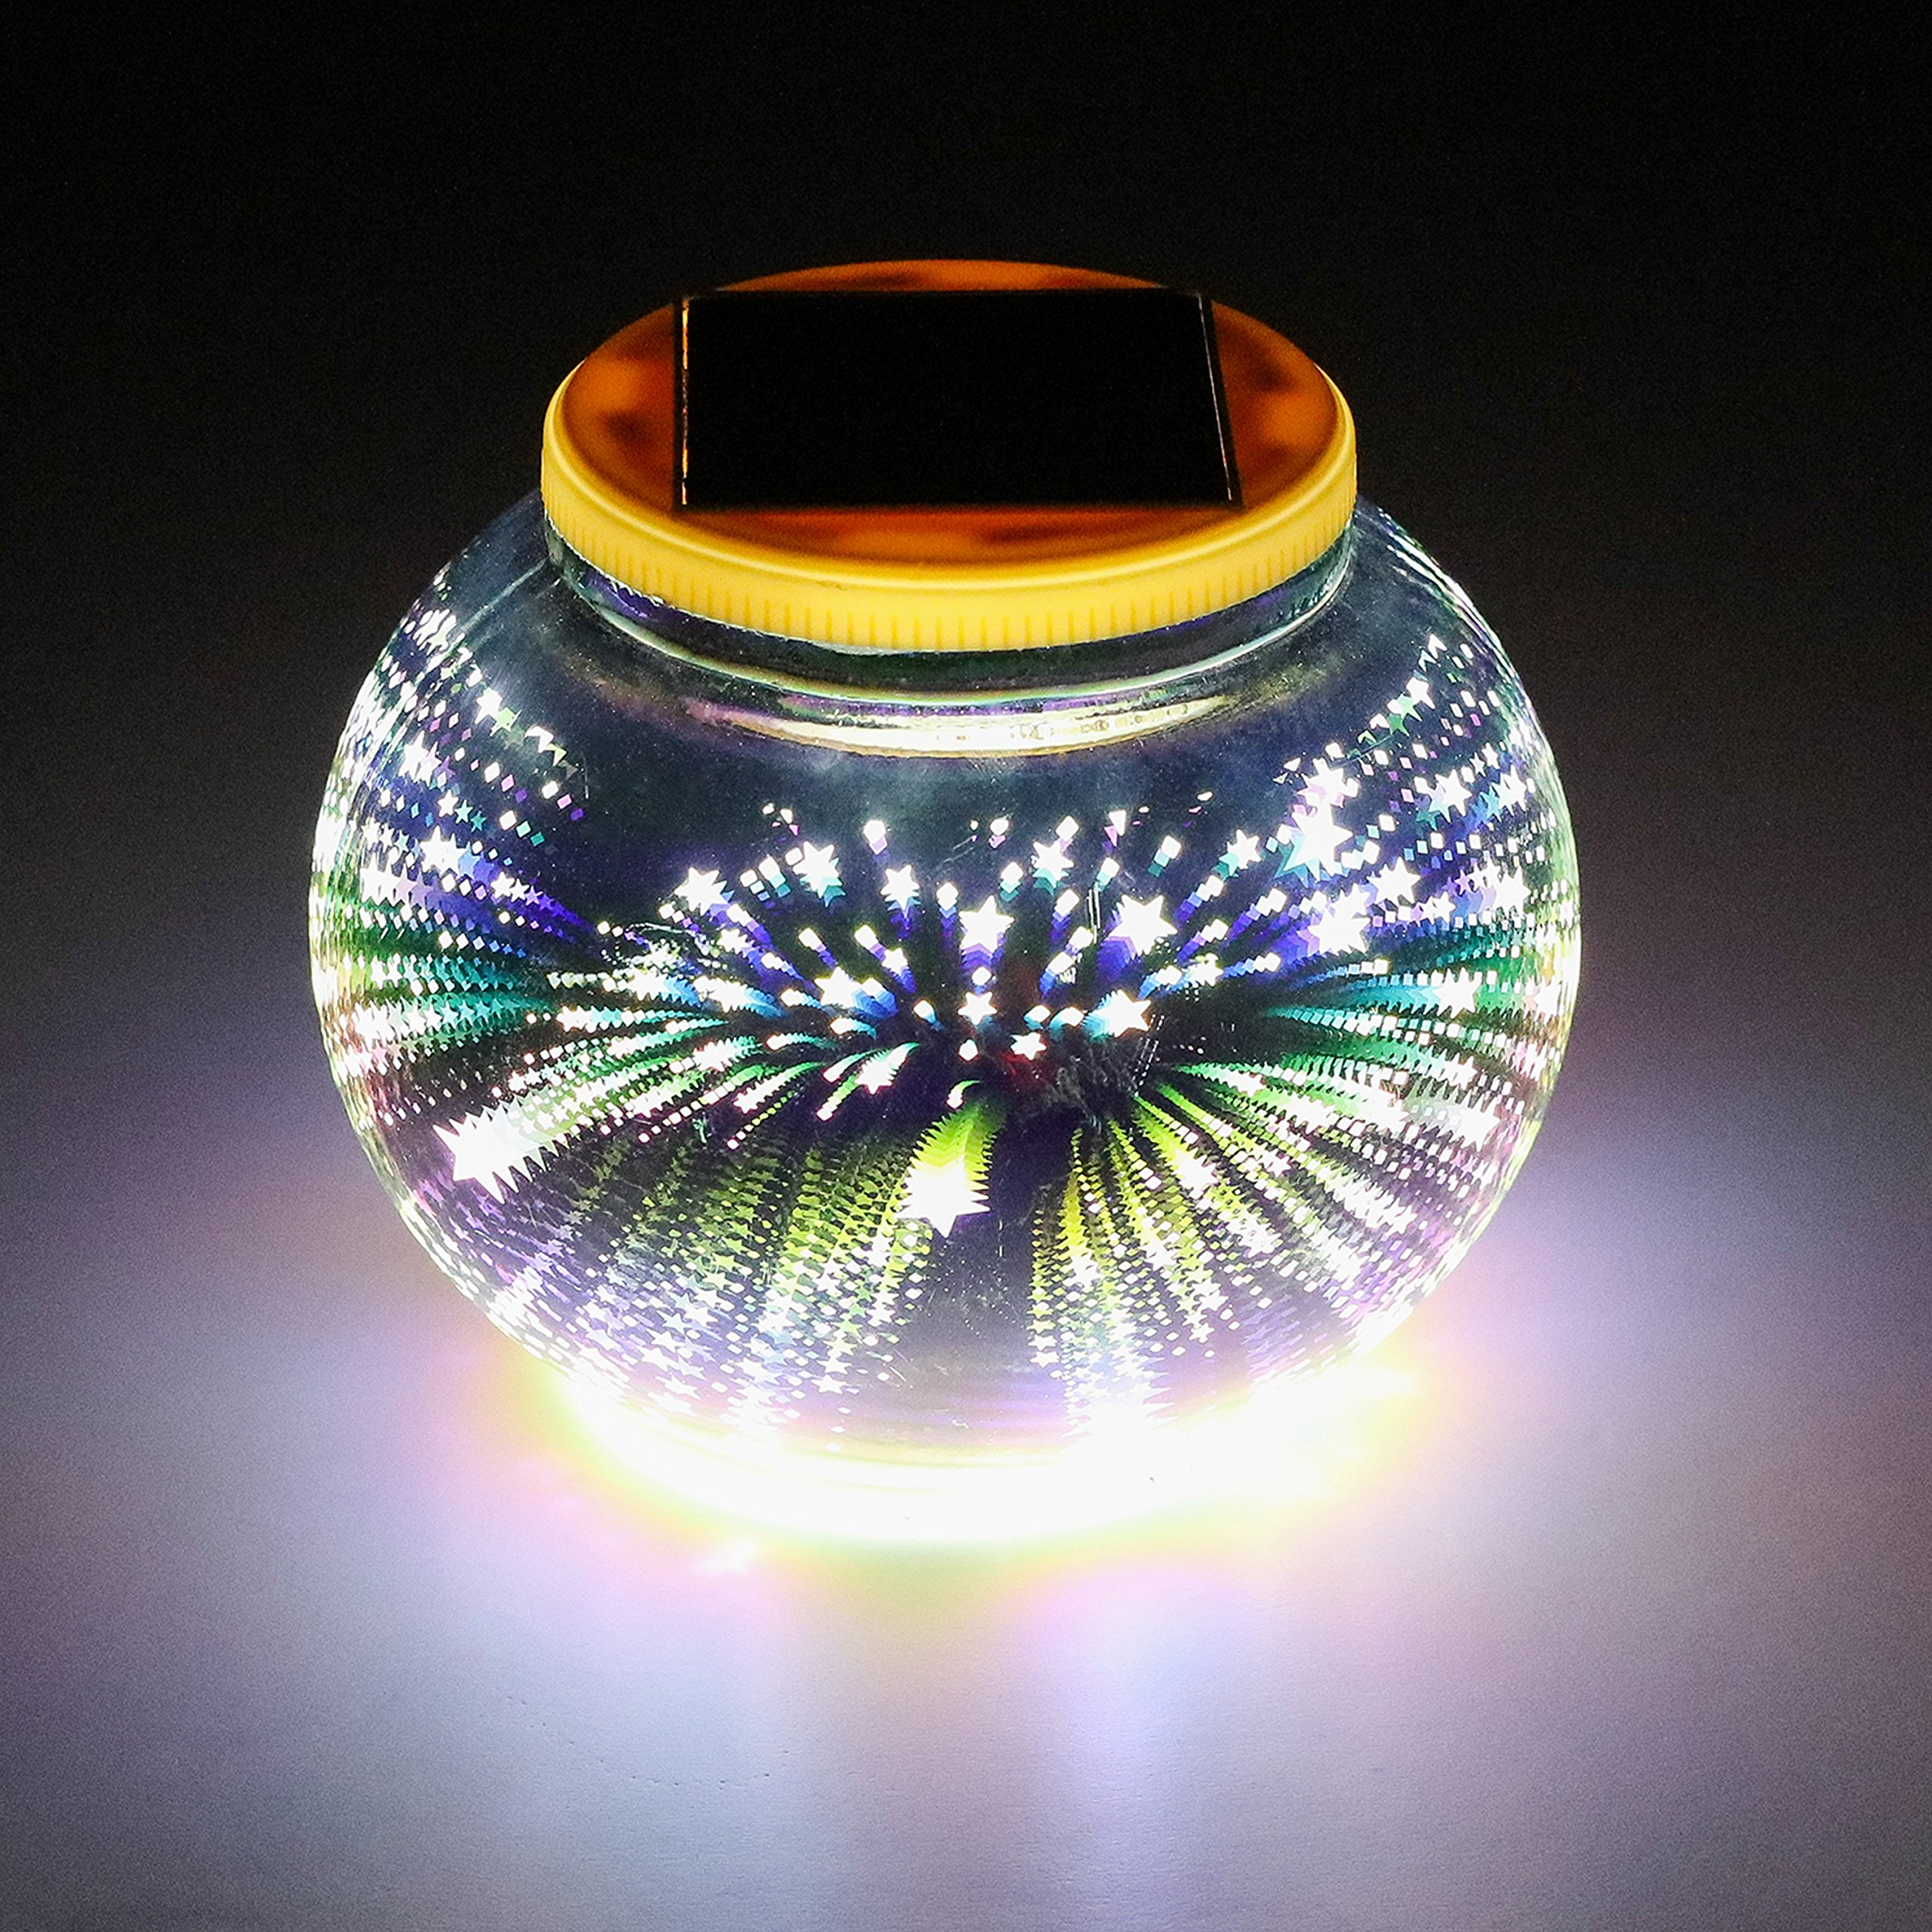 Mosaic Solar Light,Color Changing Pandawill Waterproof/Weatherproof Crystal Glass Globe Ball Light for for Patio, Garden, Yard,Party, Outdoor/Indoor Decoration